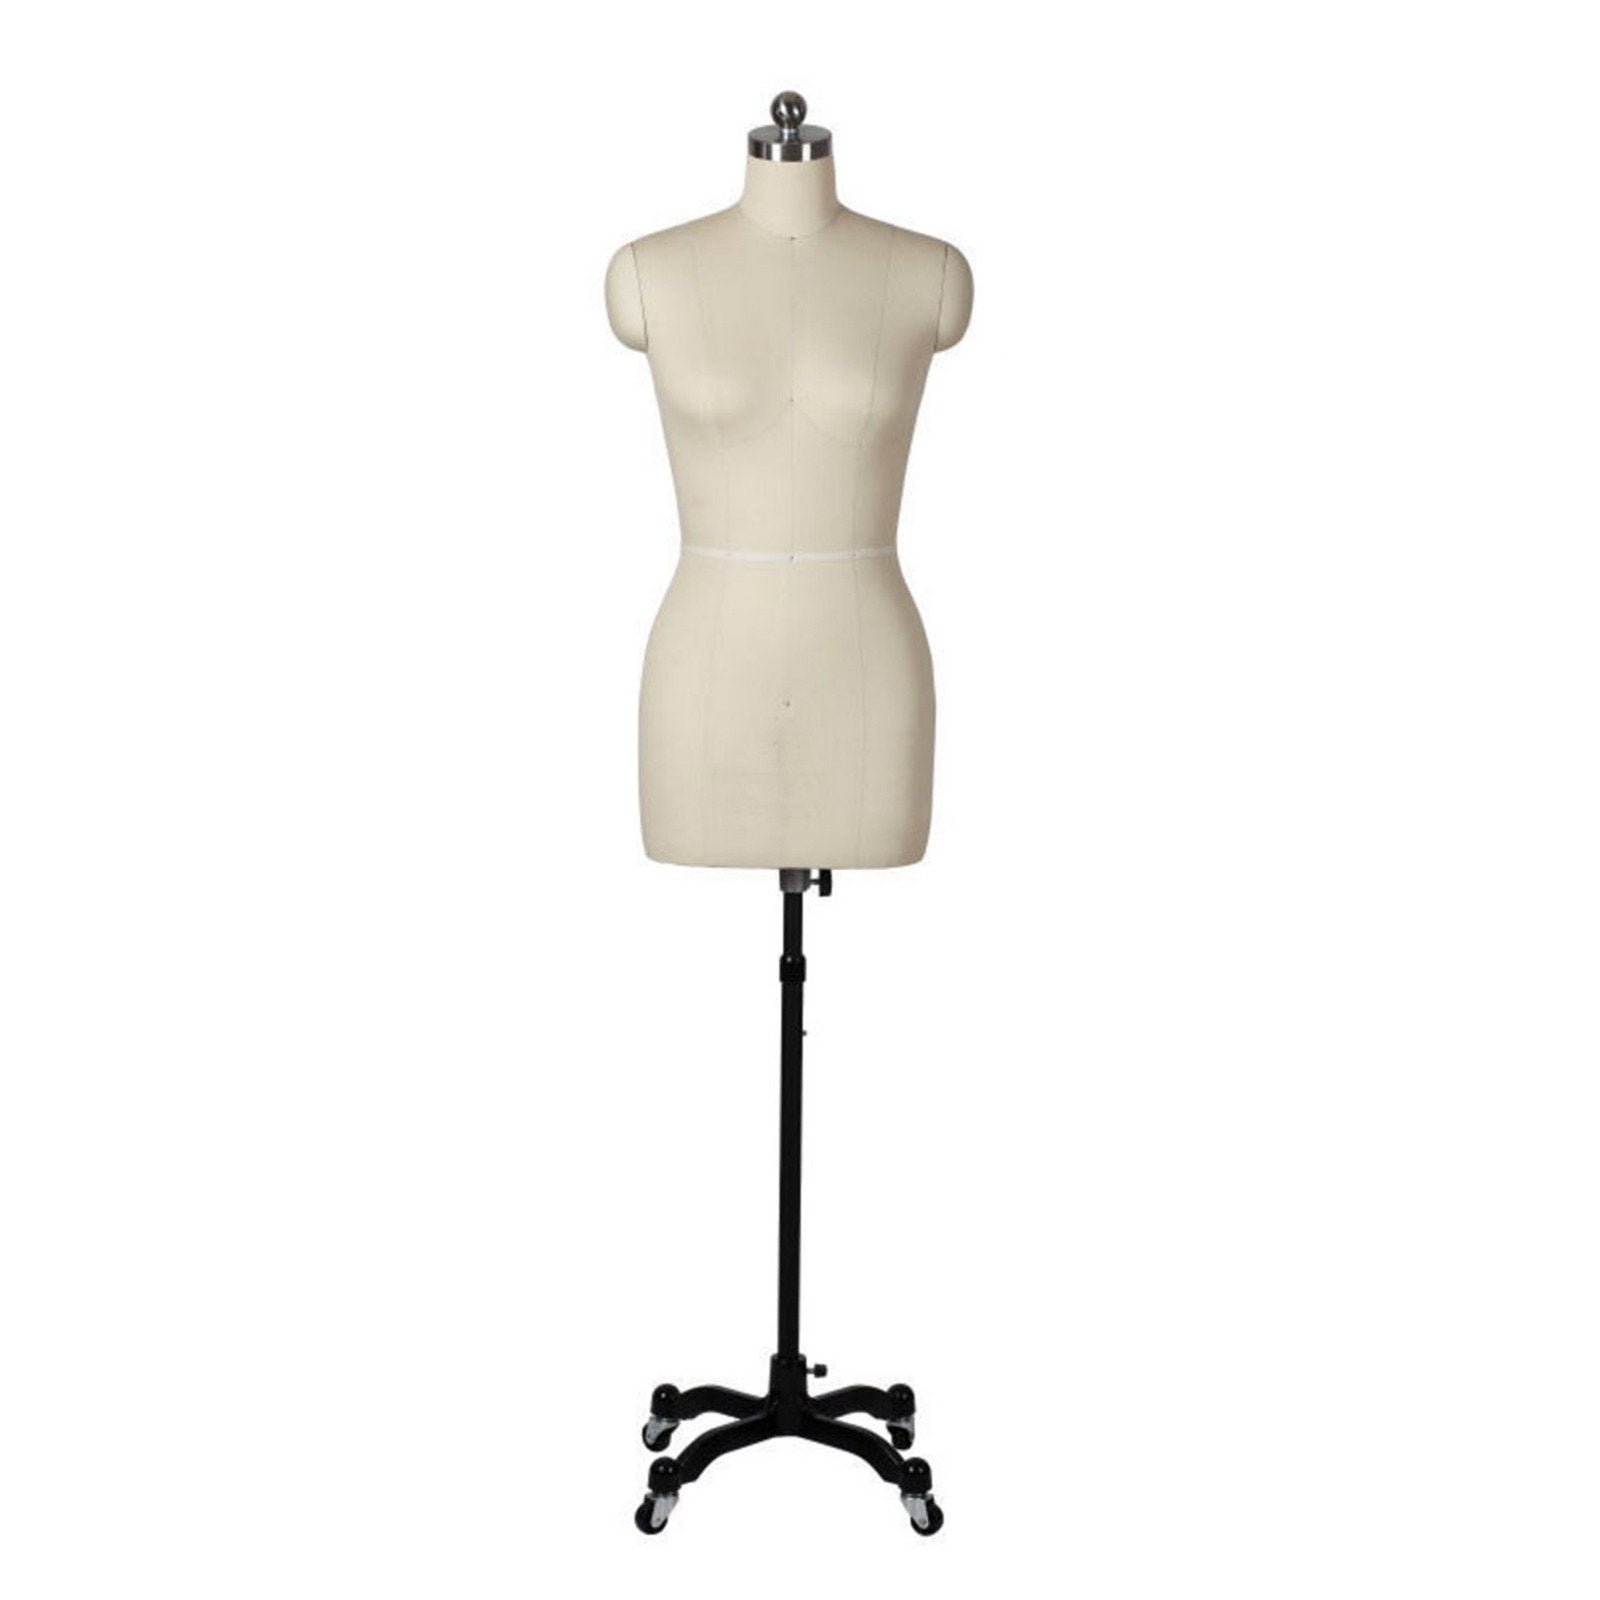 Female Professional Dress Form With Removable Shoulders, Close Up Photo Of  The Female Professional Dress